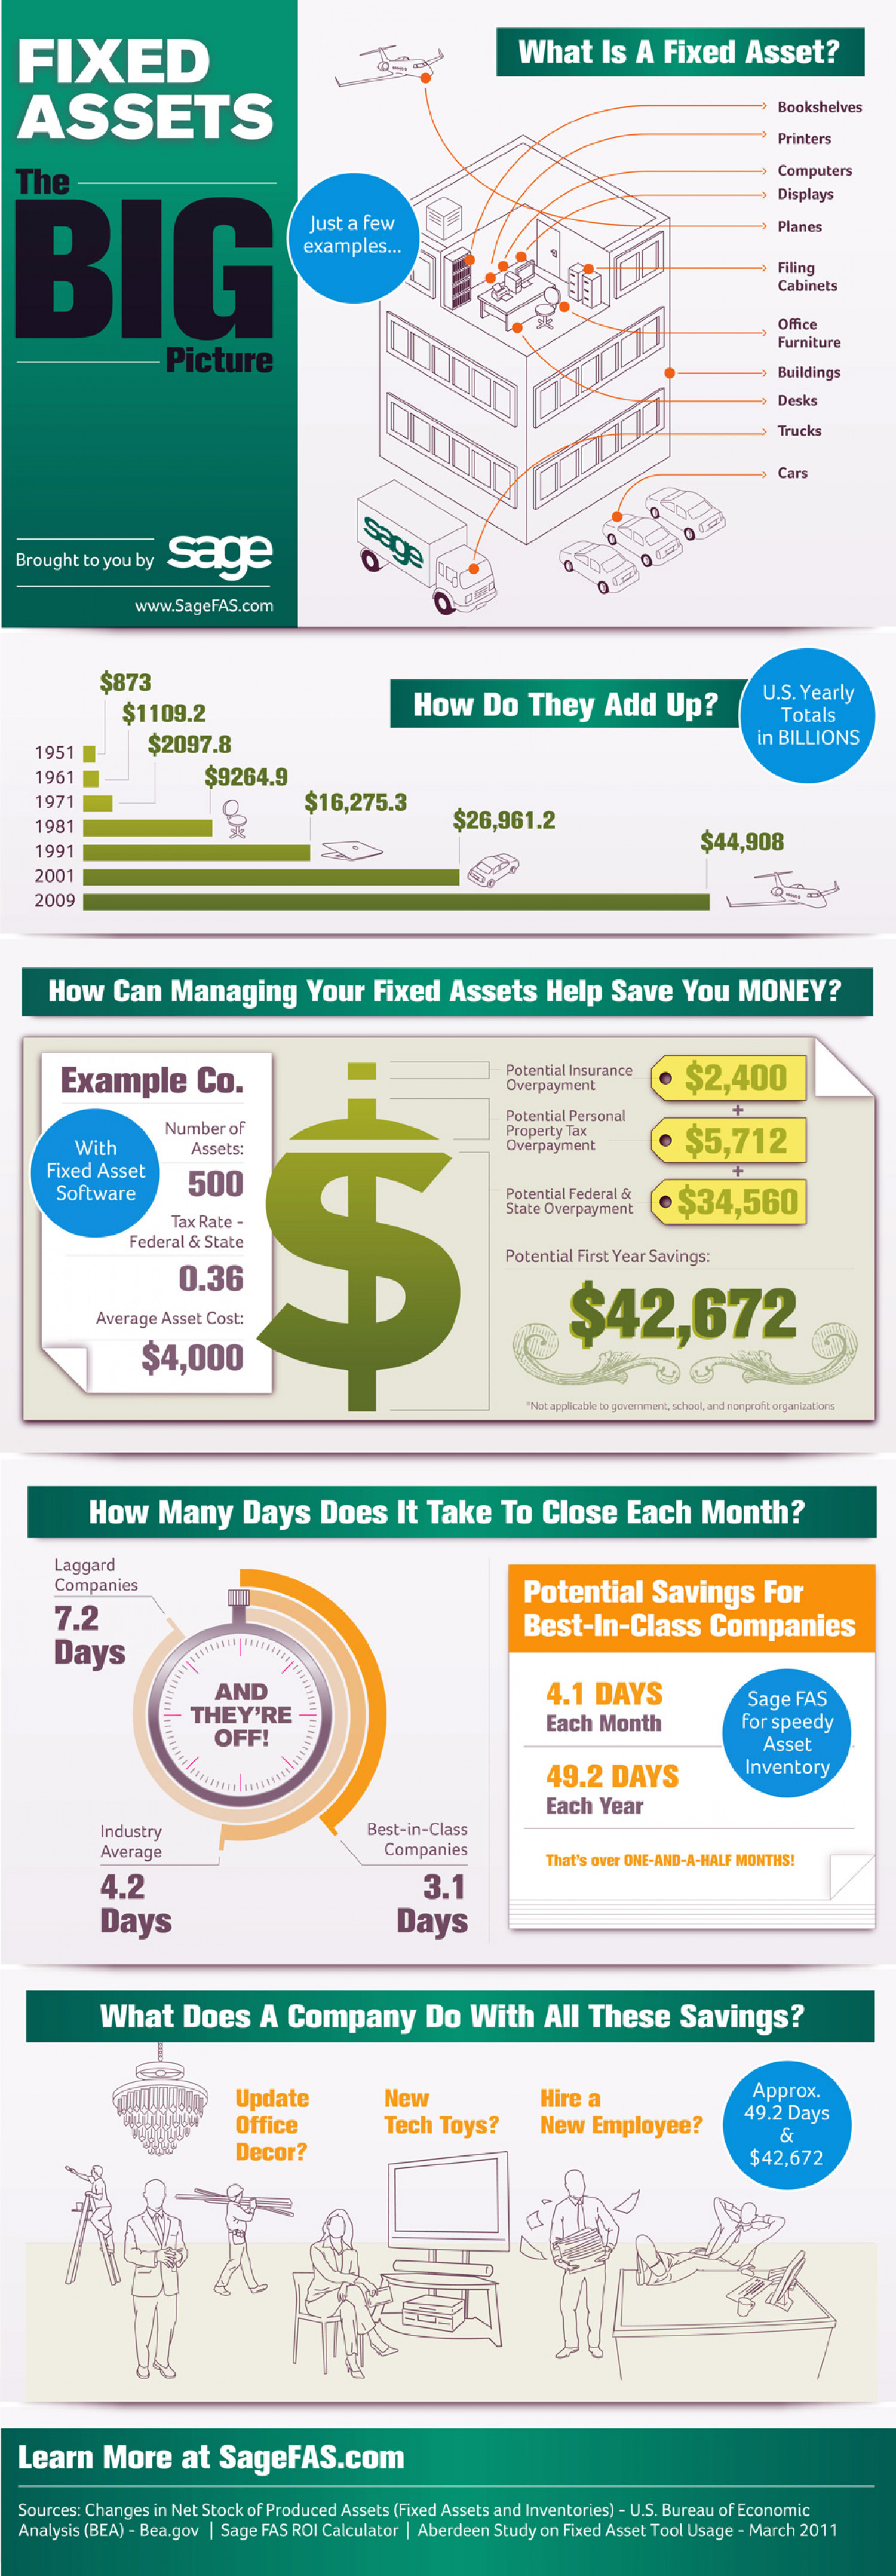 The BIG Picture: Fixed Assets Infographic